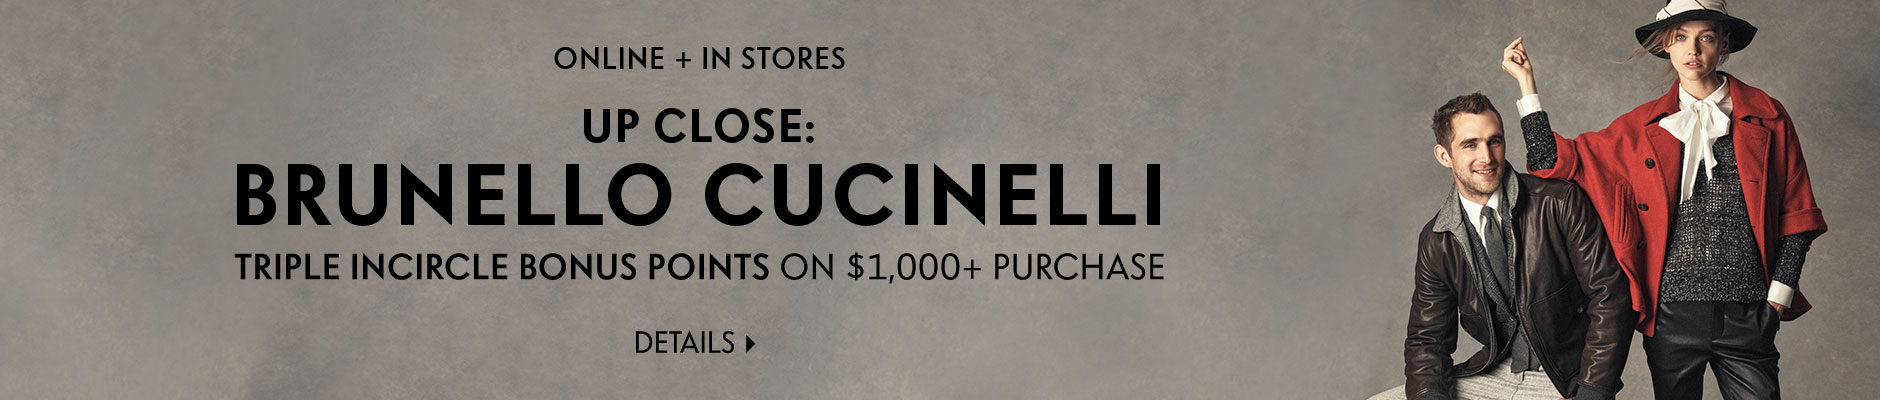 Up Close: Brunello Cucinelli - Triple InCircle Bonus Points On $1,000+ Purchase